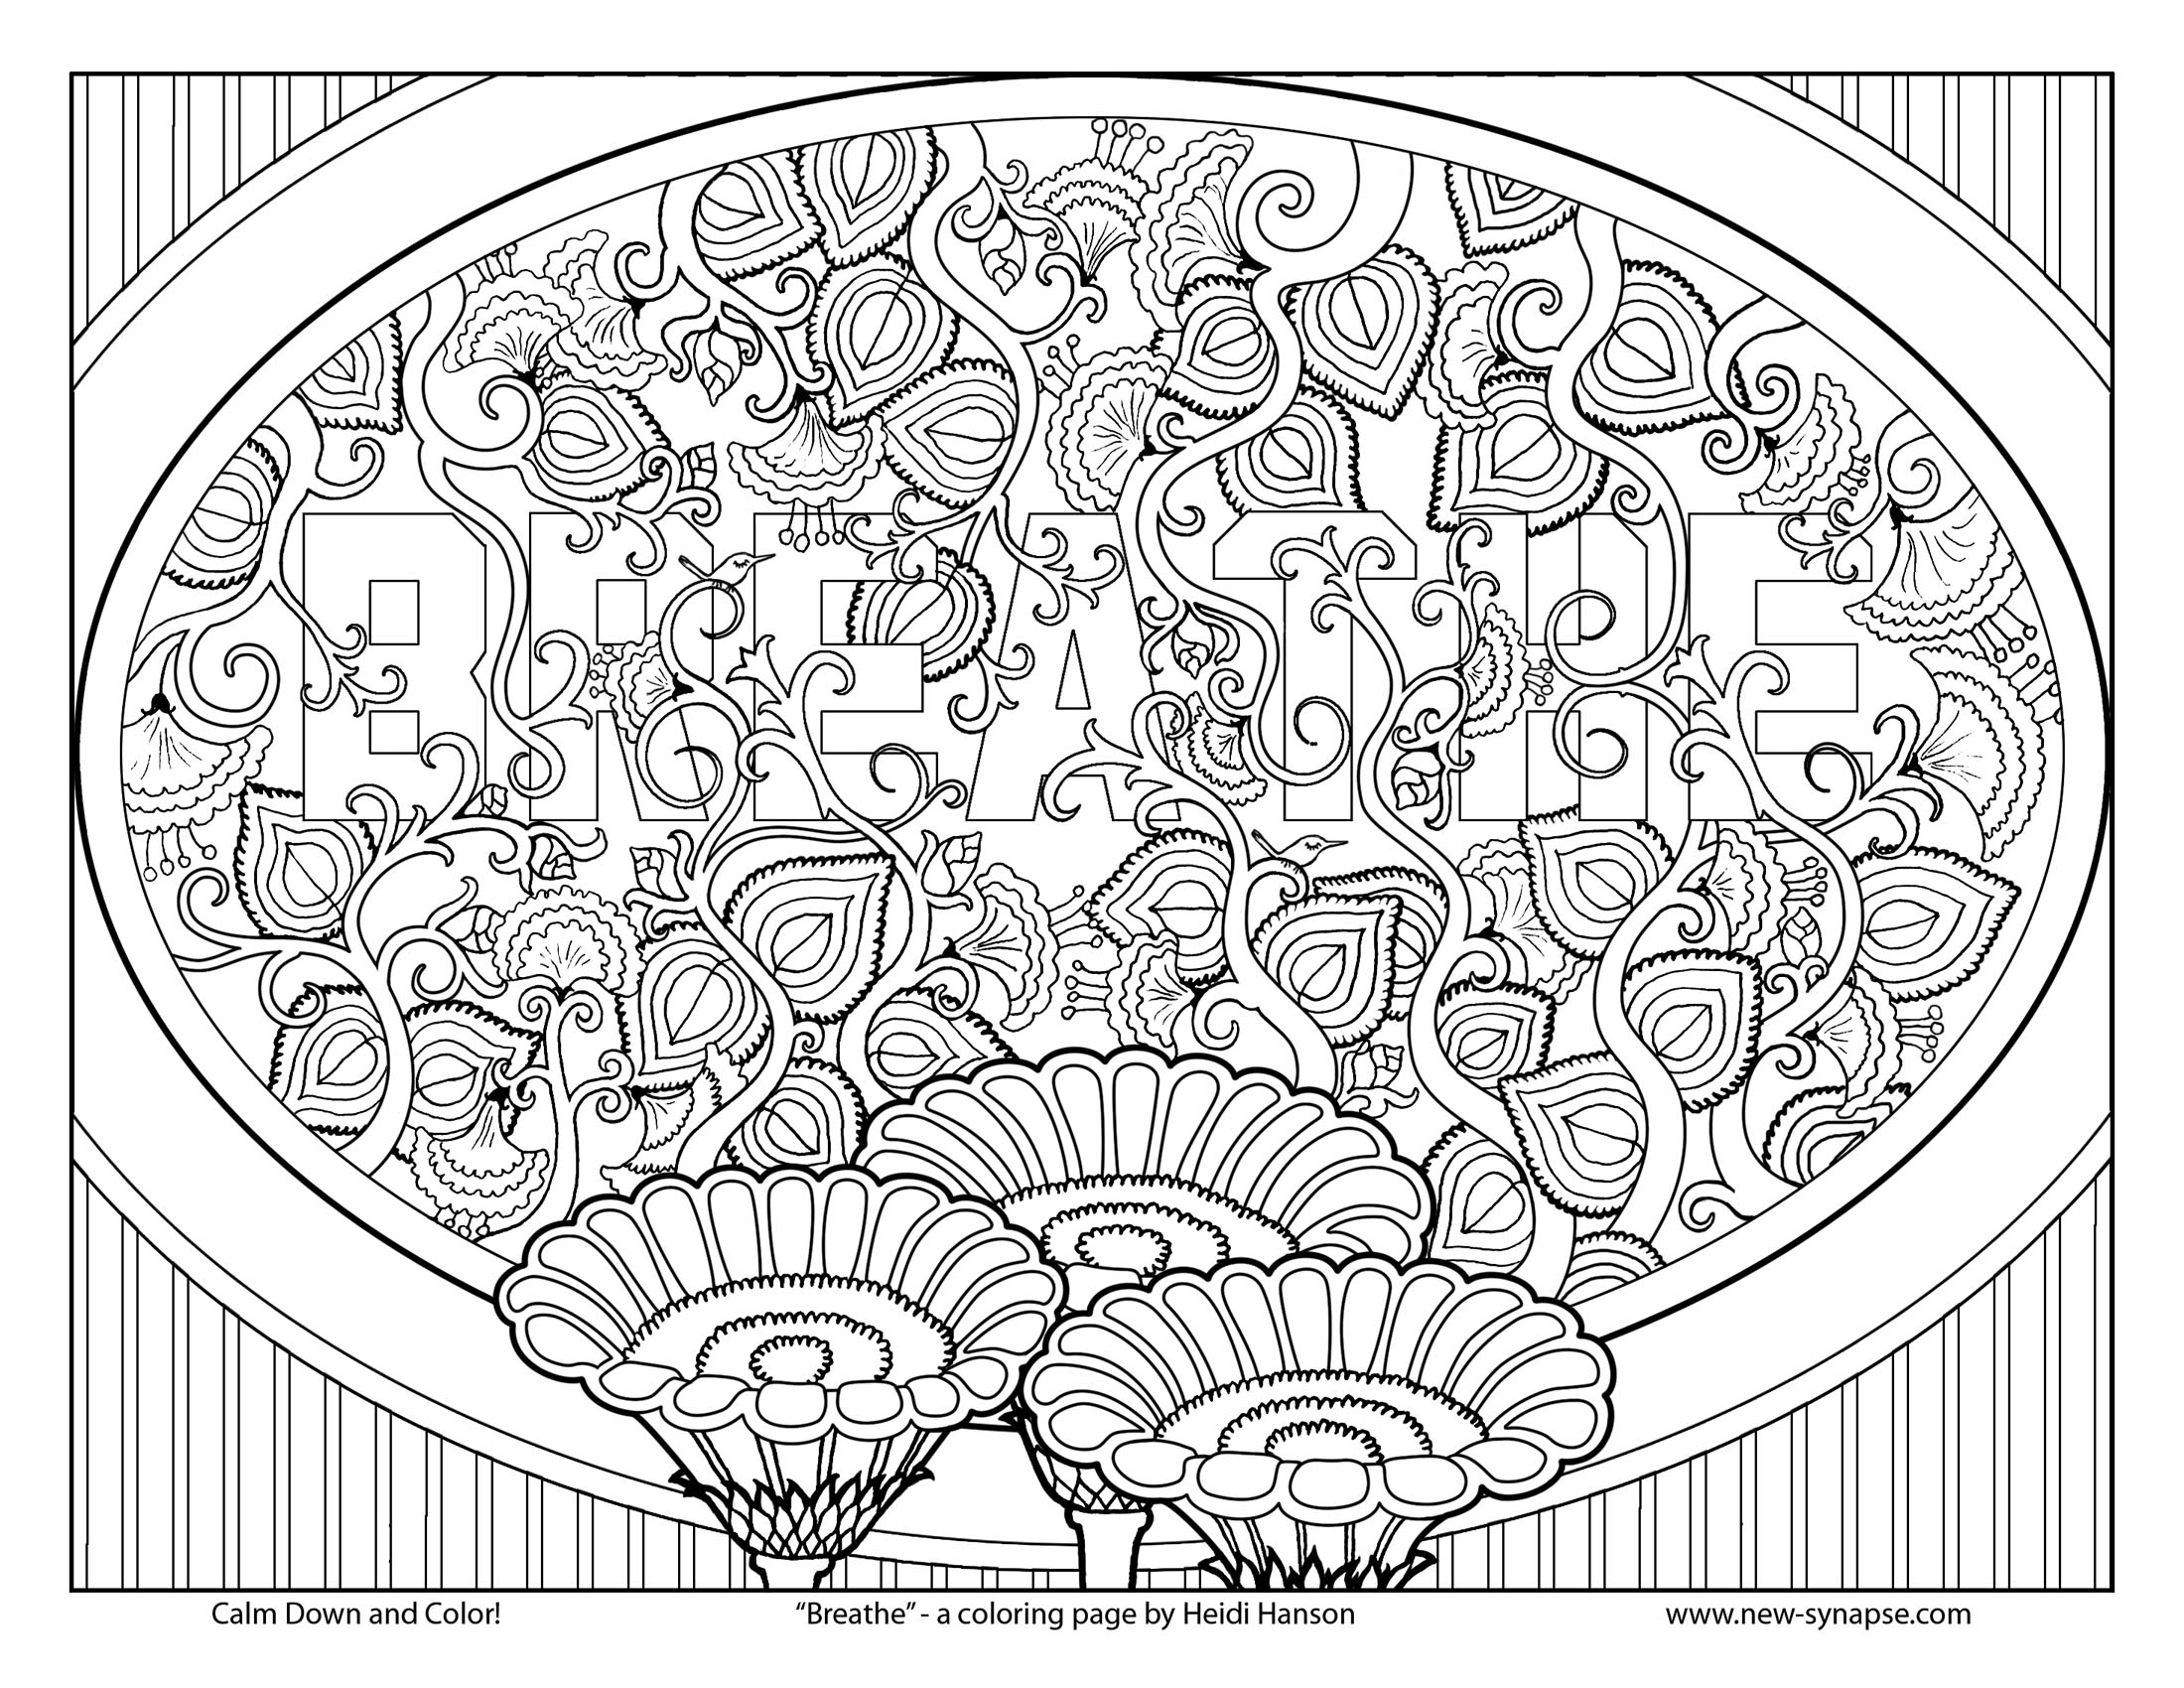 Free Coloring Pages for Relaxing De stressing The Art of